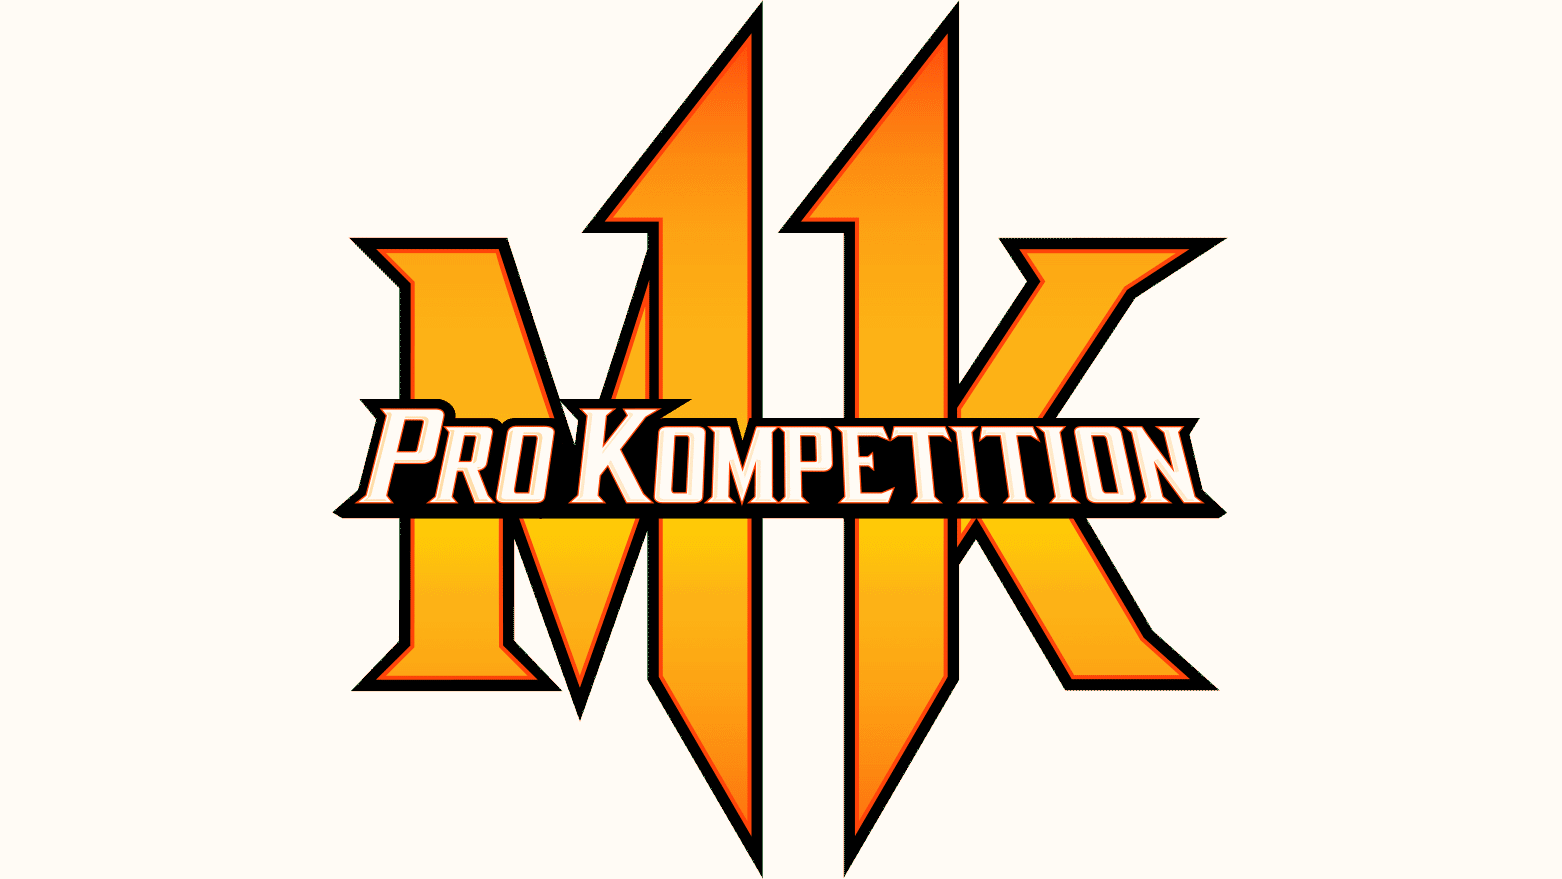 Mortal Kombat 11 Pro Kompetition Season 2 has been confirmed